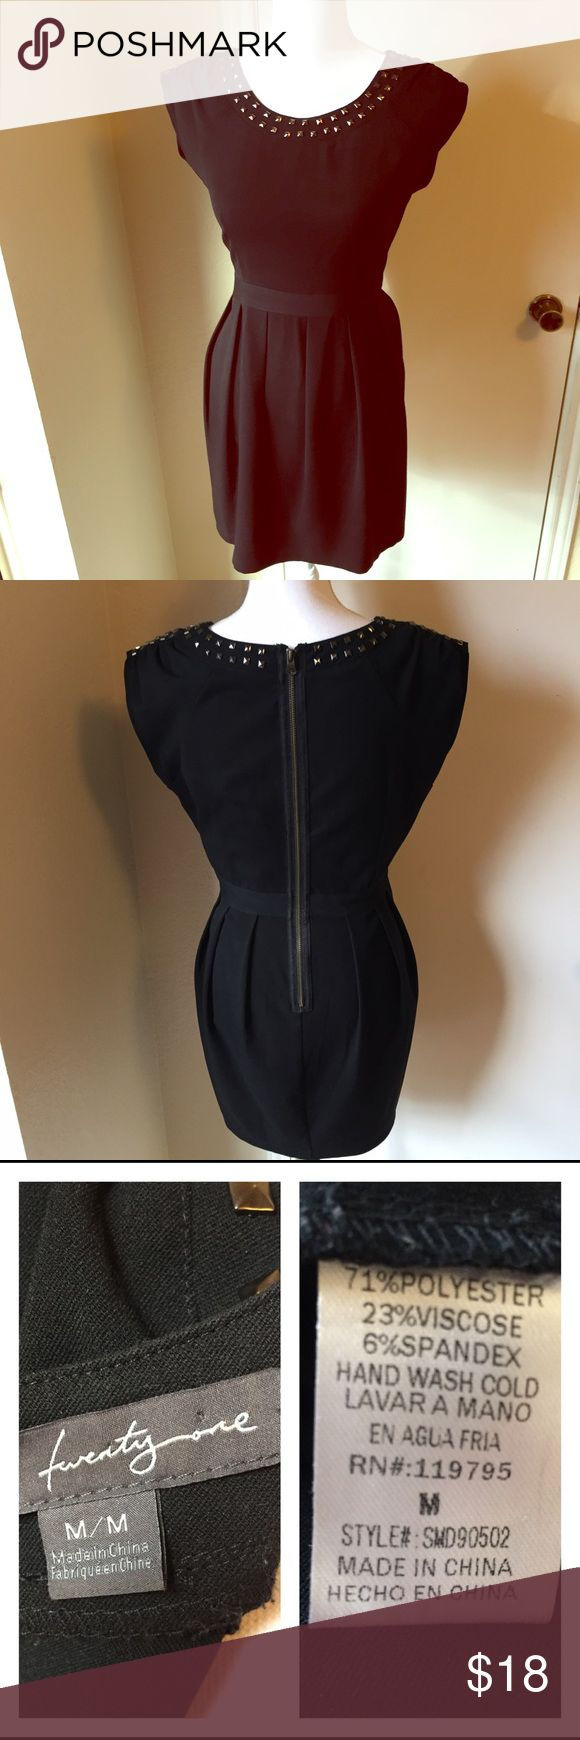 Twenty one BLACK Studded Dress This awesome little black dress features square studs and a long zipper in the back. The pleated skirt and cinched waist are ultra flattering and create a classic silhouette. There are some small pads in the shoulders to give an edgy shape. Would pair well with heels or a choker. *Gently Used Condition* Twenty one Dresses